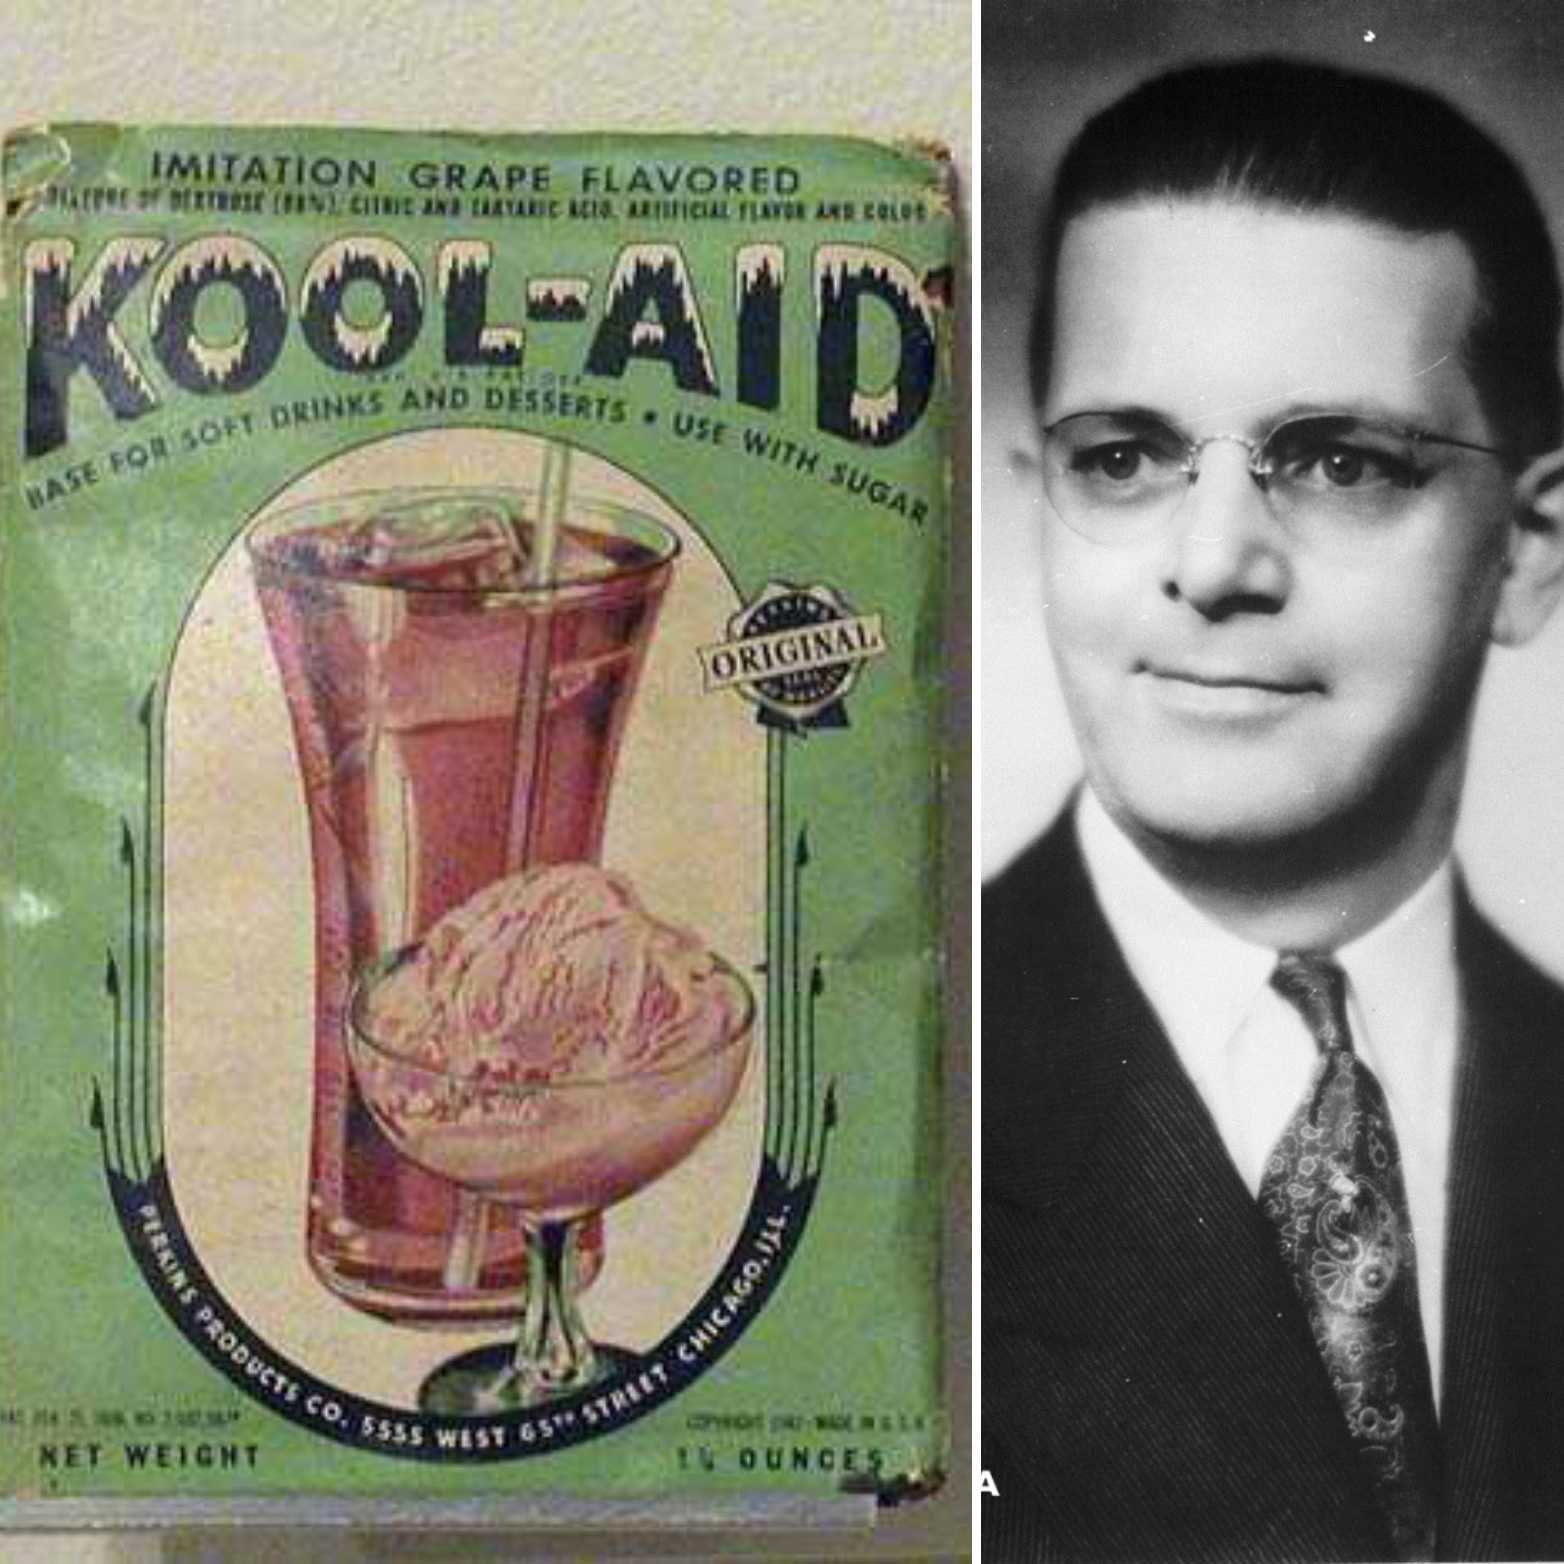 A collage with an old Kool-Aid package on the left and an image of Edwin Perkins on the right